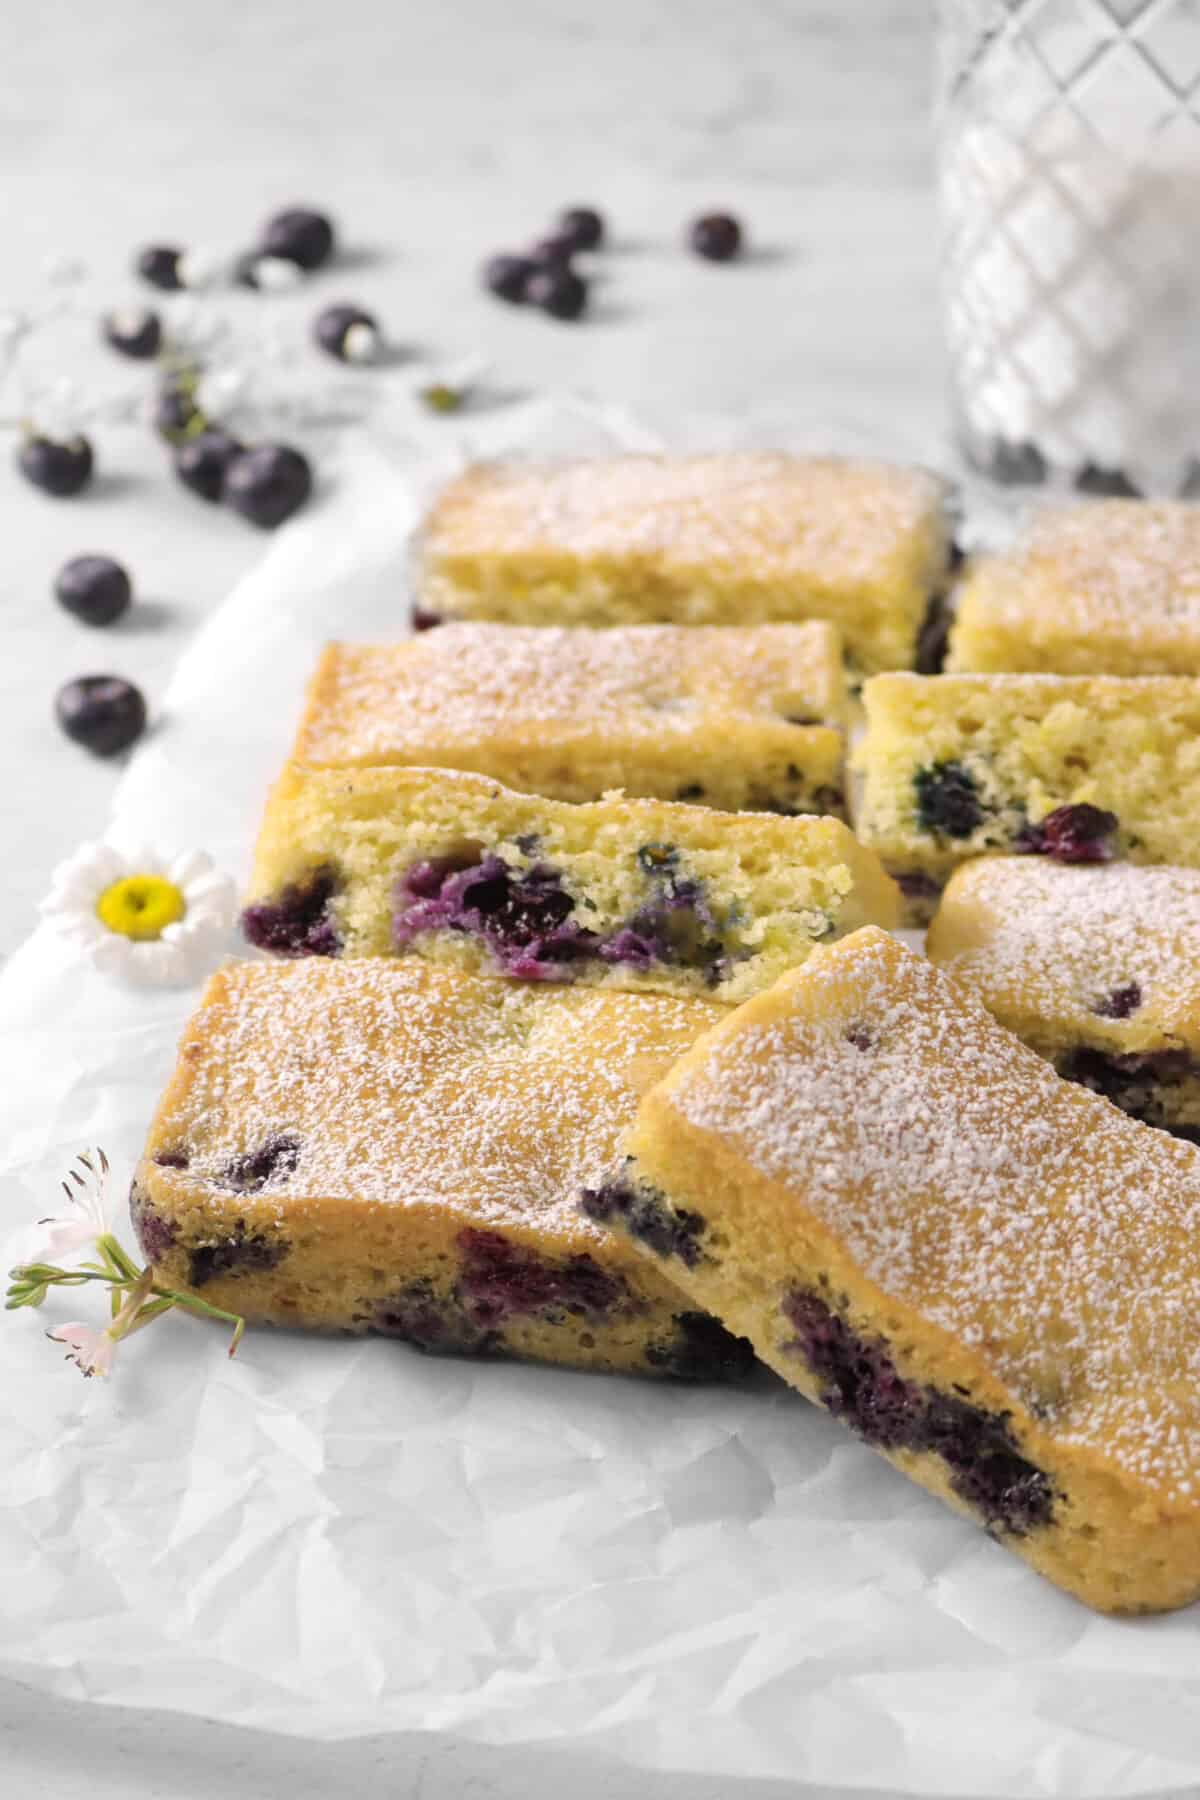 Lemon Blueberry Snack Cake sliced on parchment paper. blueberries, fresh flowers, and glass of milk